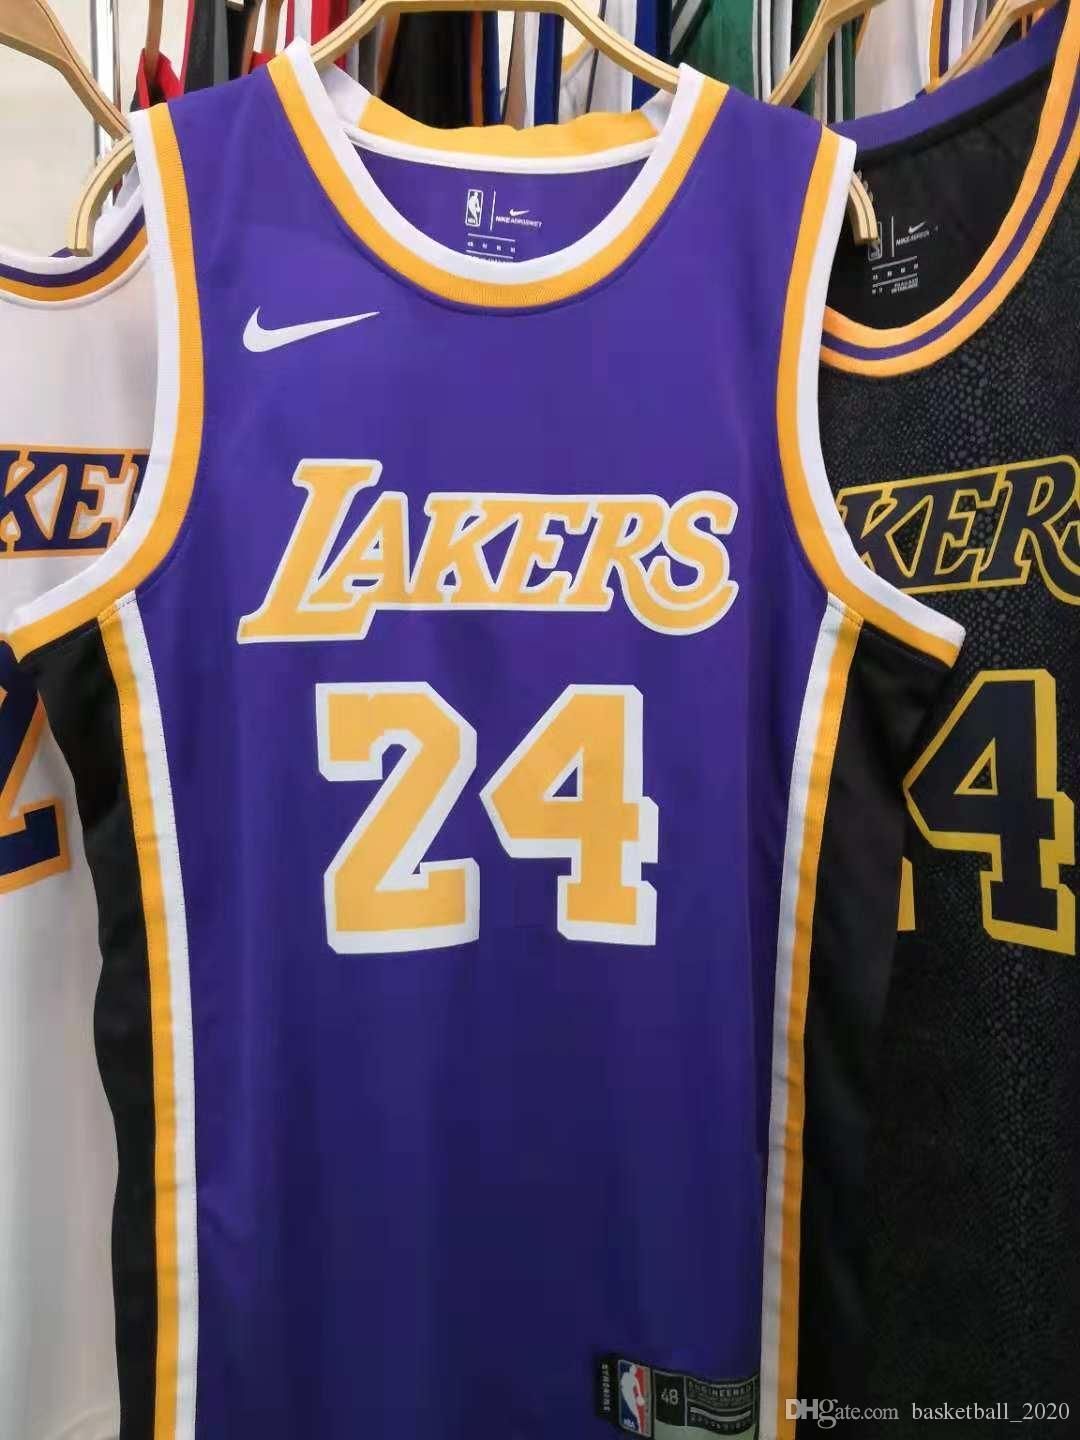 the latest 8d966 482a4 2020 New Mens Laker 24# Kobe Bryant Retro Purple Swingman Basketball Jersey  Name And Number Hot pressing printed Authentic US Size XXS-XXL